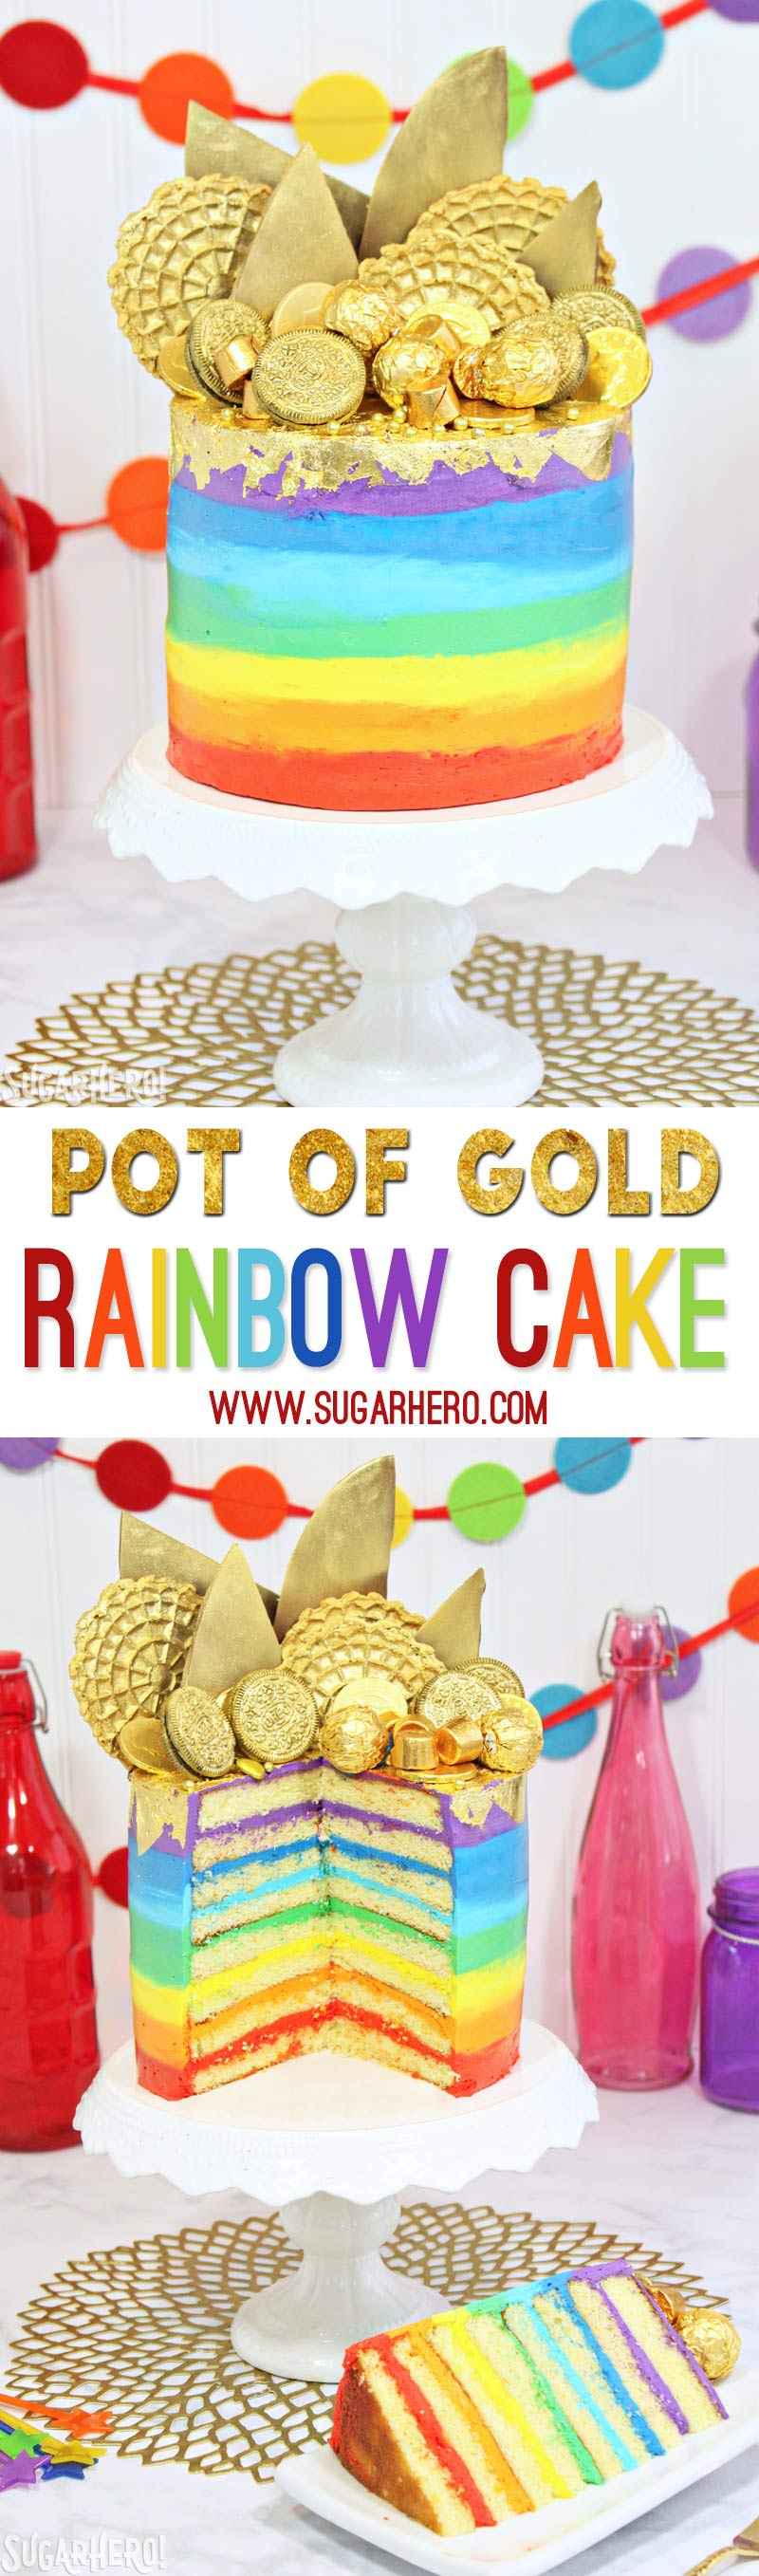 Pot of Gold Rainbow Cake - with EIGHT rainbow layers and sparkling edible gold treats on top! | From SugarHero.com